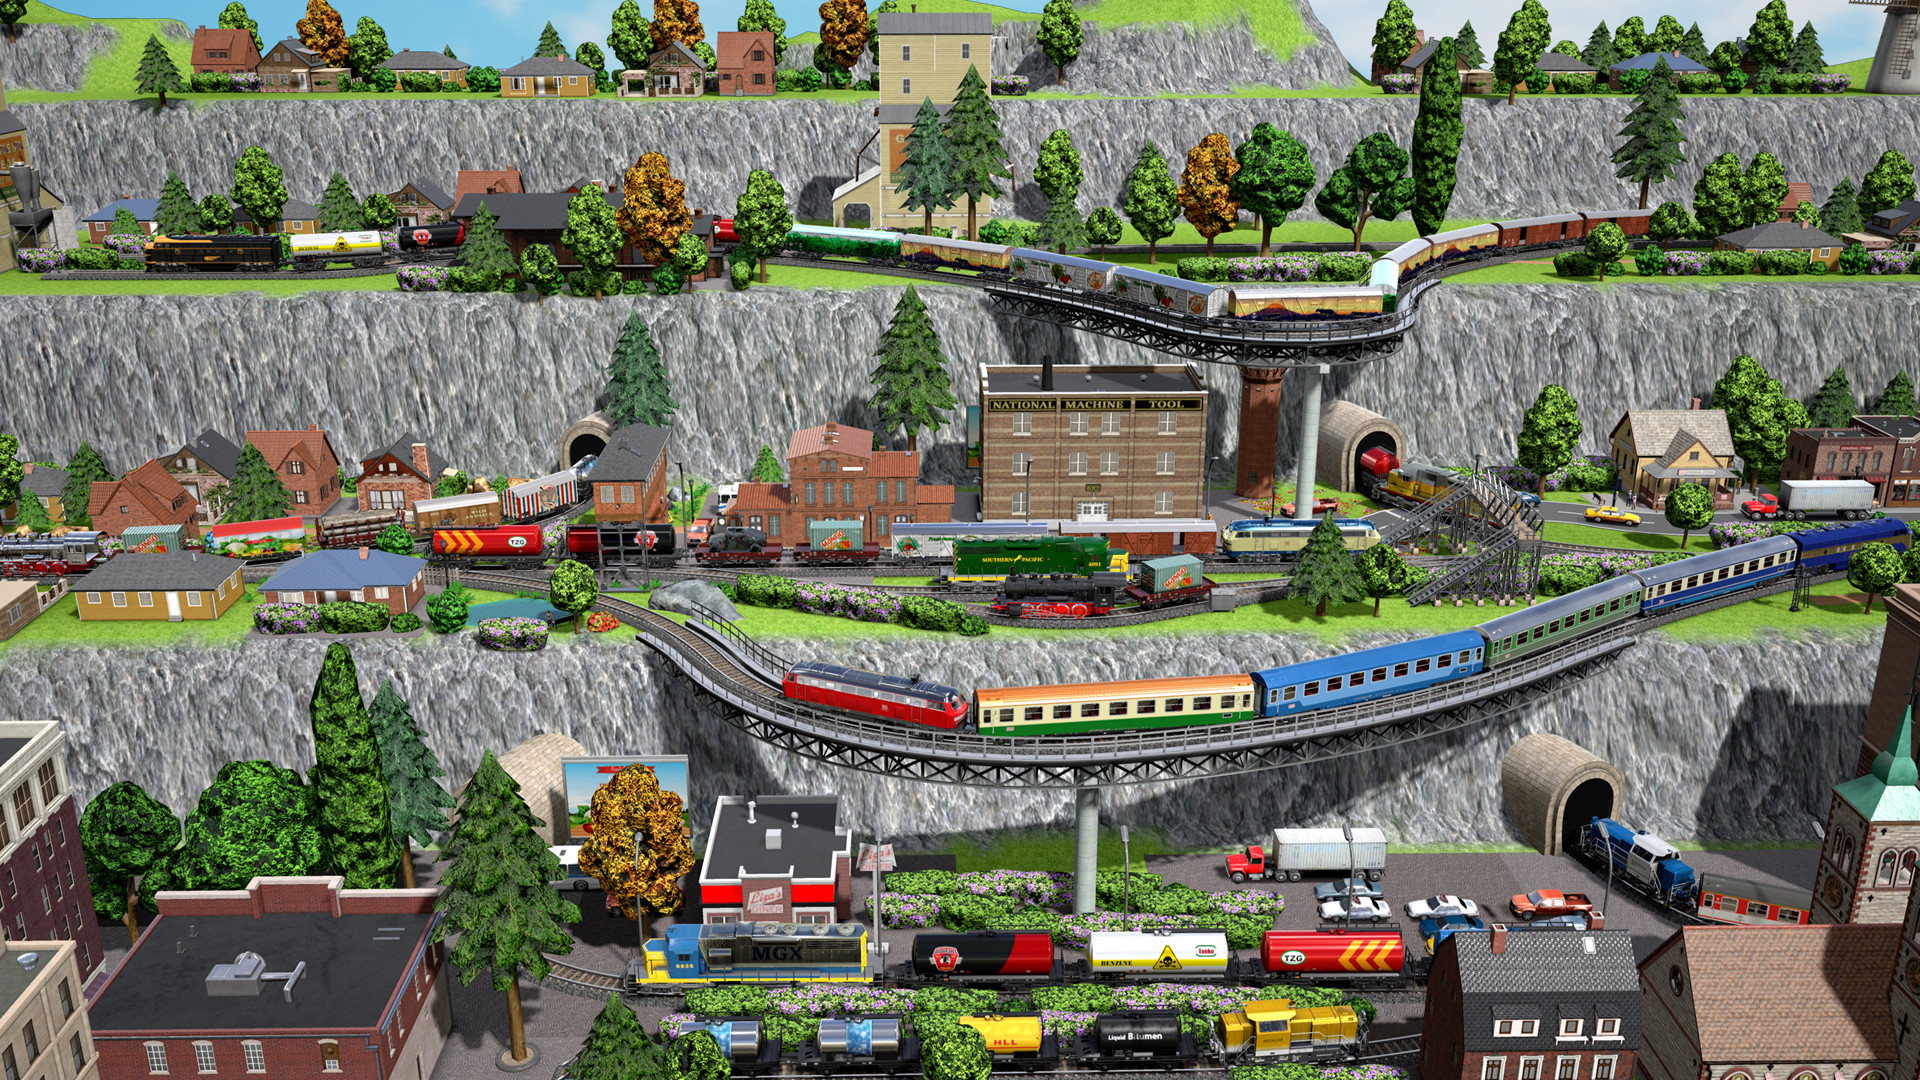 Model Railway Easily screenshot